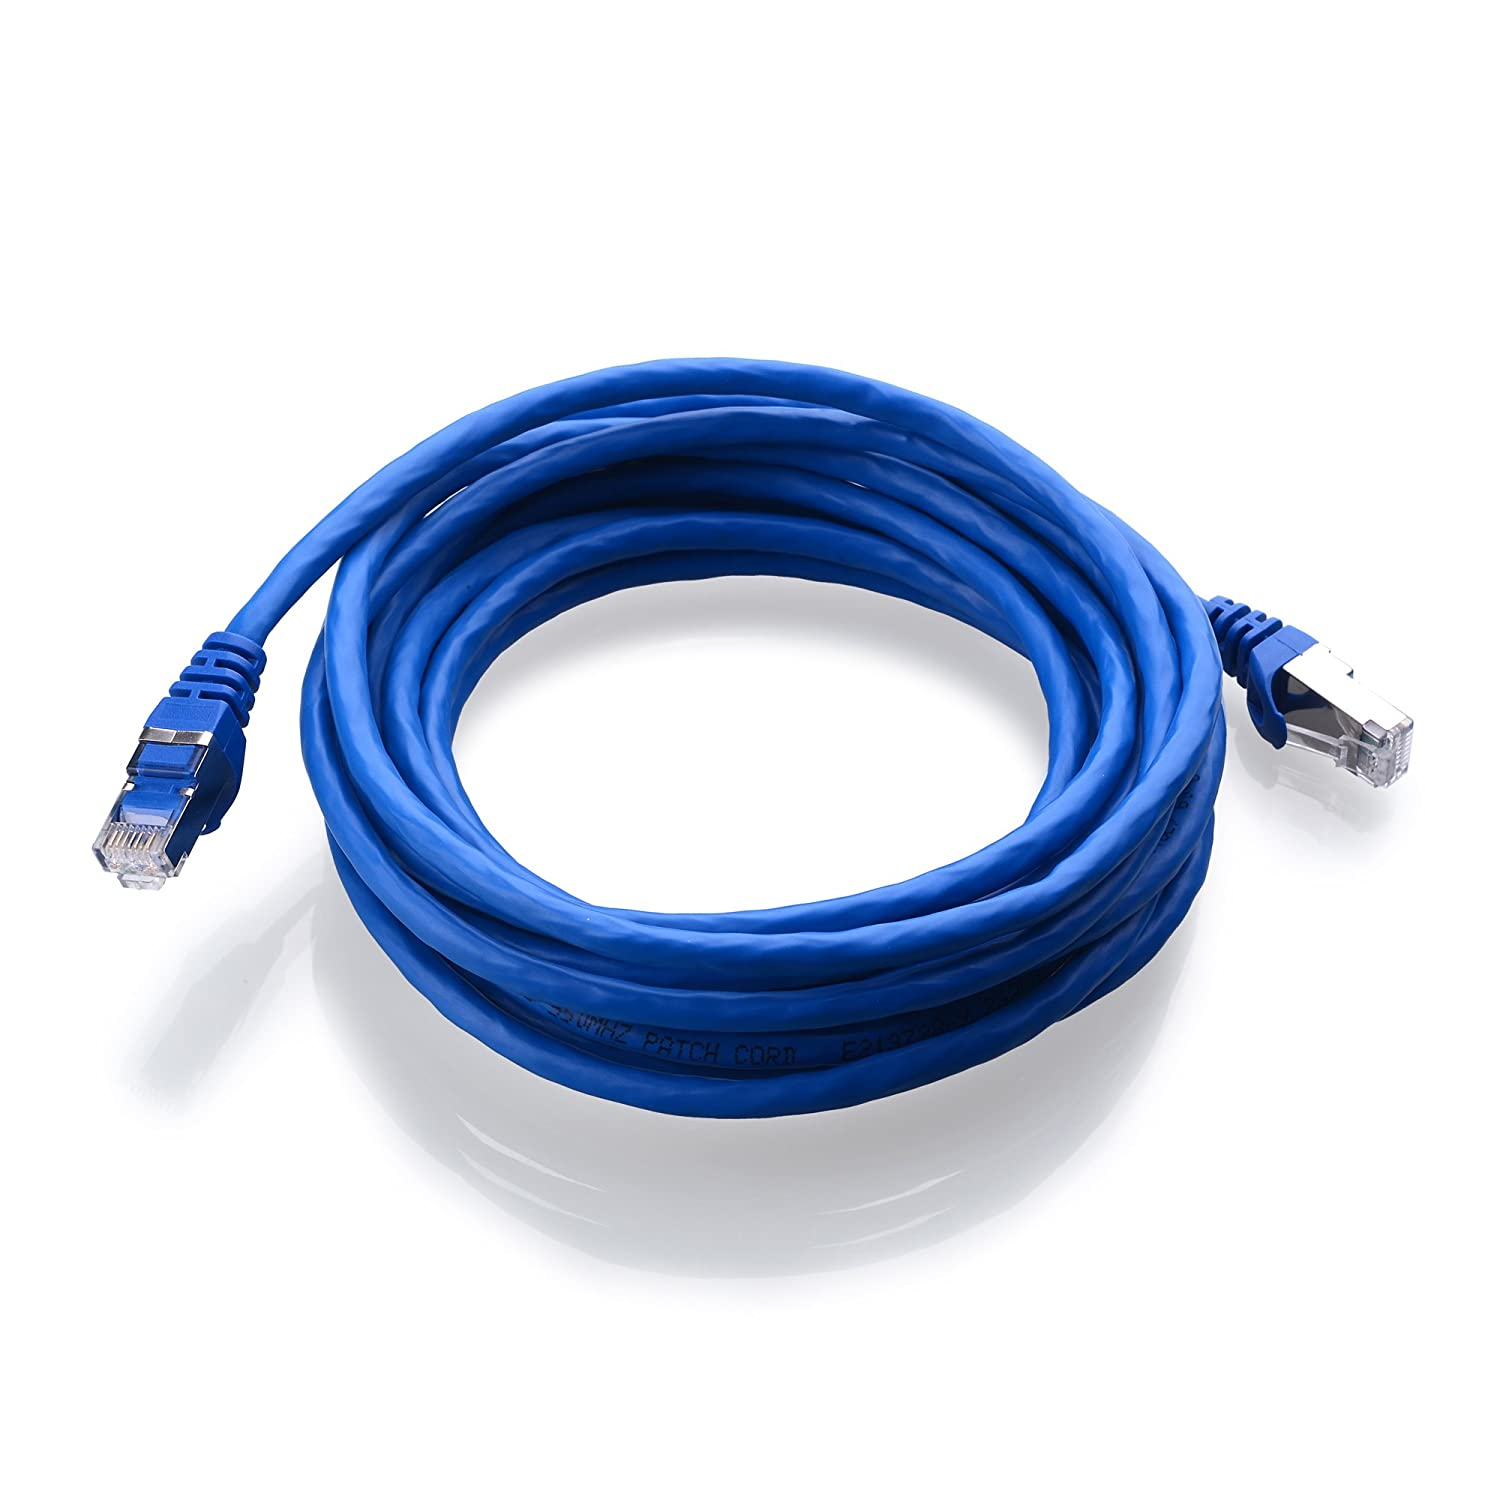 Cable Matters Snagless Cat 6a Cat6a Sstp Sftp Cableorganizer Cat5e Patch 14ft Blue Shielded Ethernet In 14 Feet Availble 1ft 200ft Length Computers